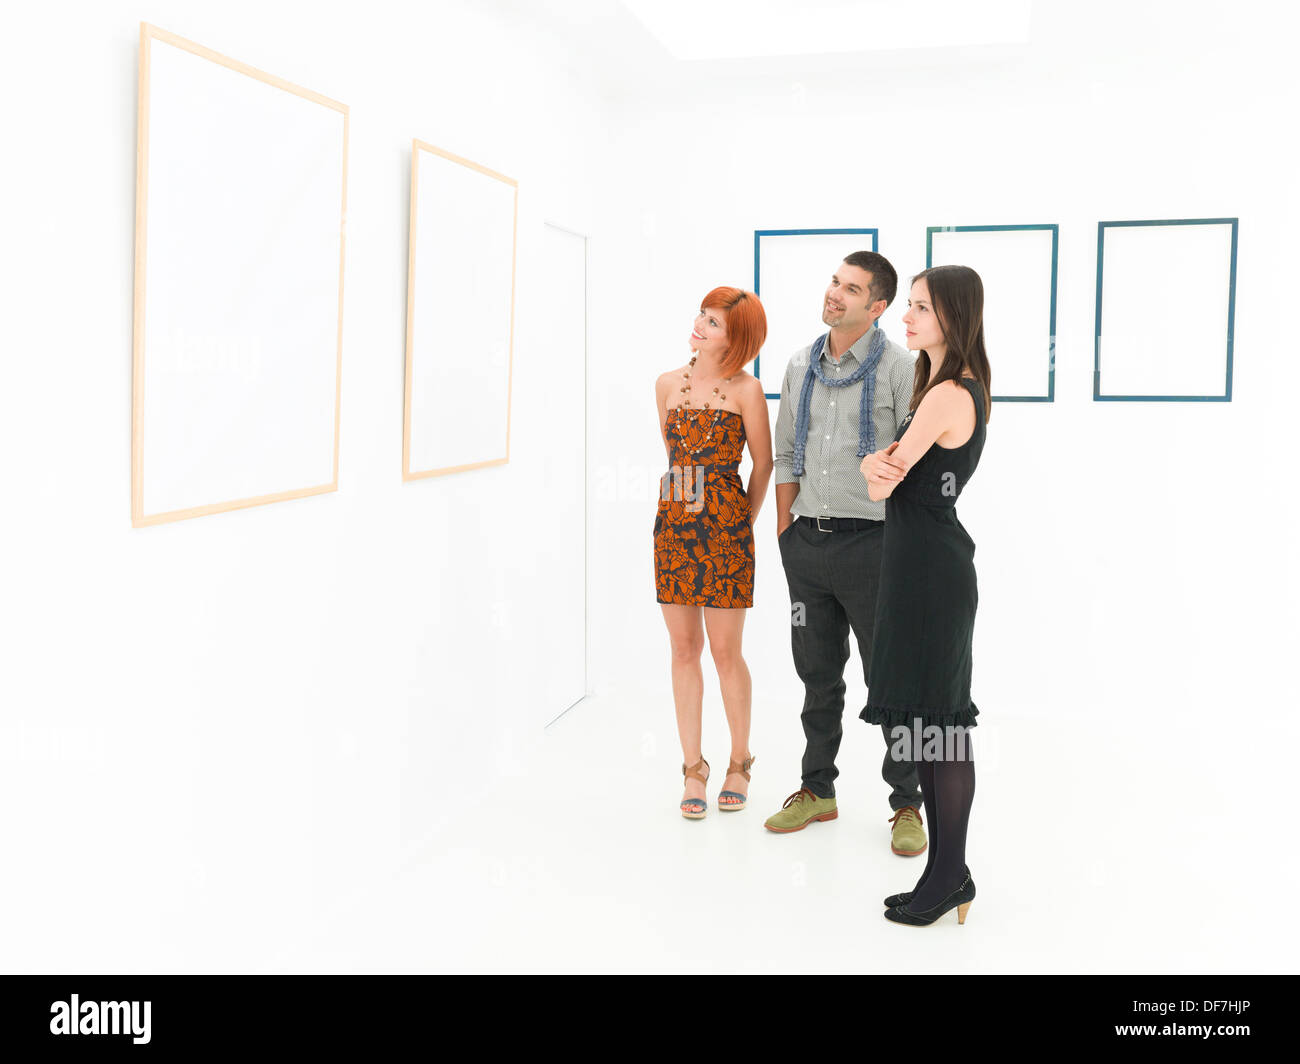 group of young caucasian people standing in front of large empty frames displayed on white walls, contemplating them - Stock Image